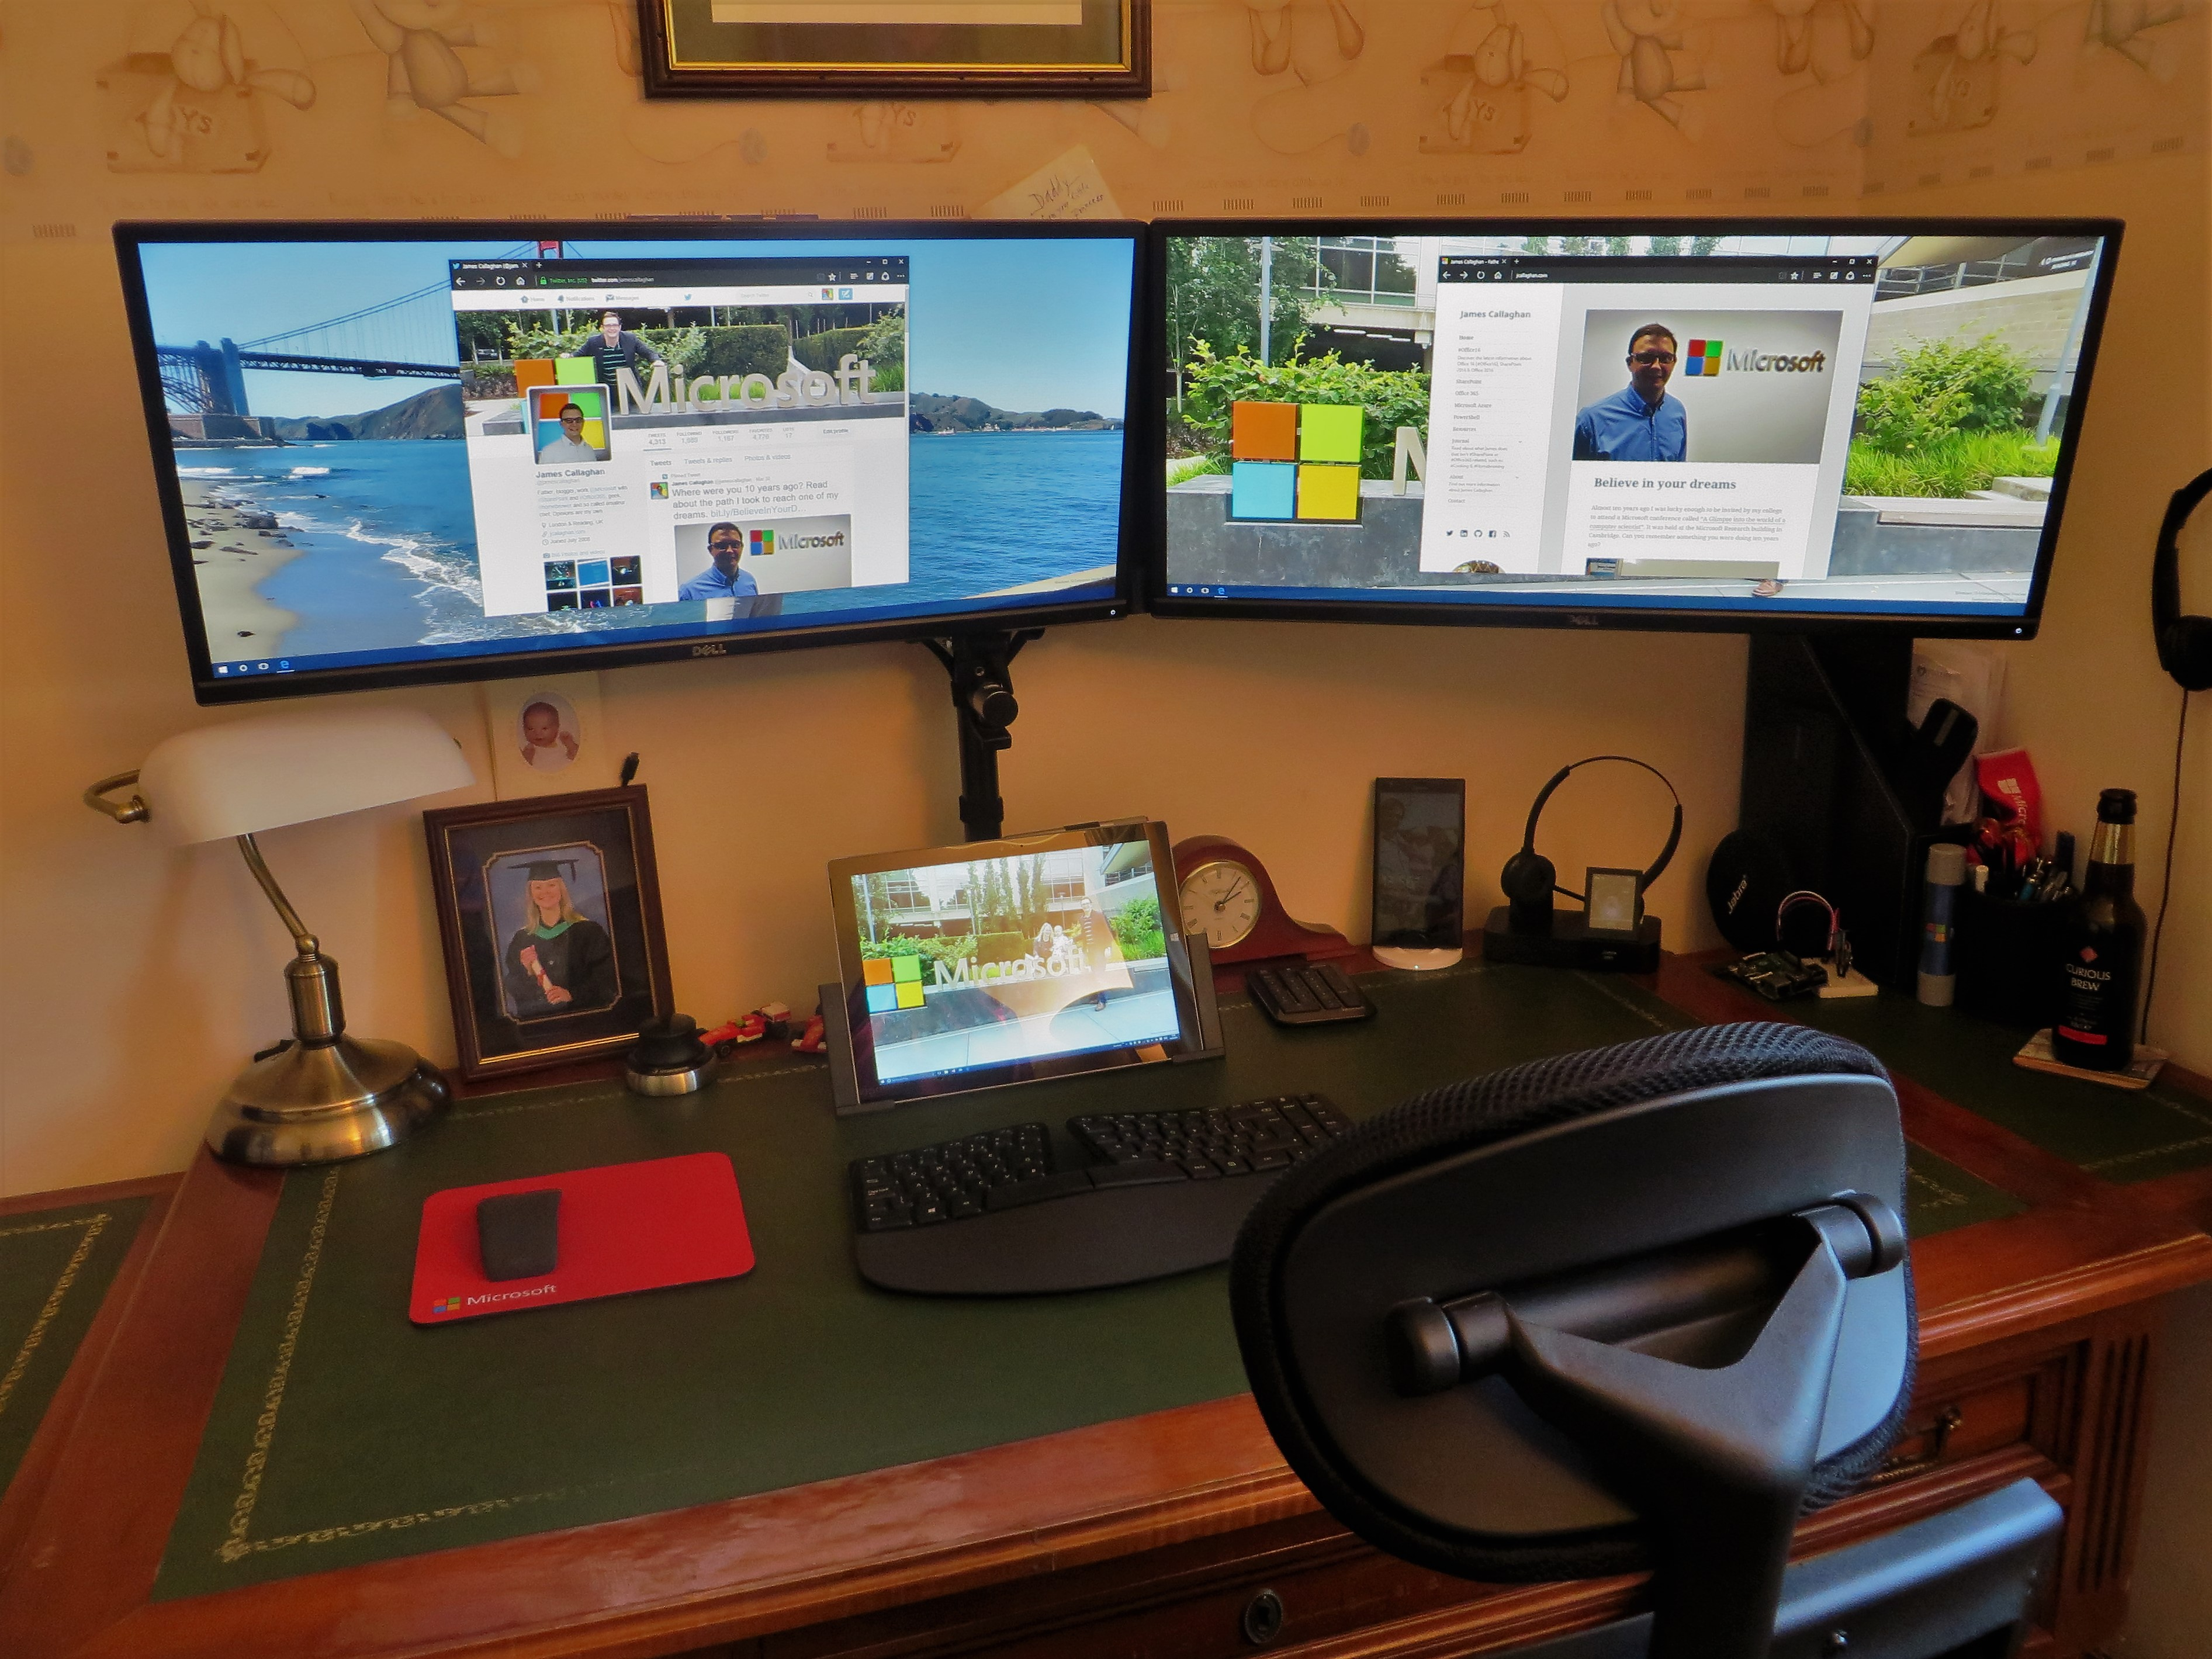 hight resolution of how to daisy chain multiple monitors on a surface pro 3 running daisy chain monitors wiring diagram